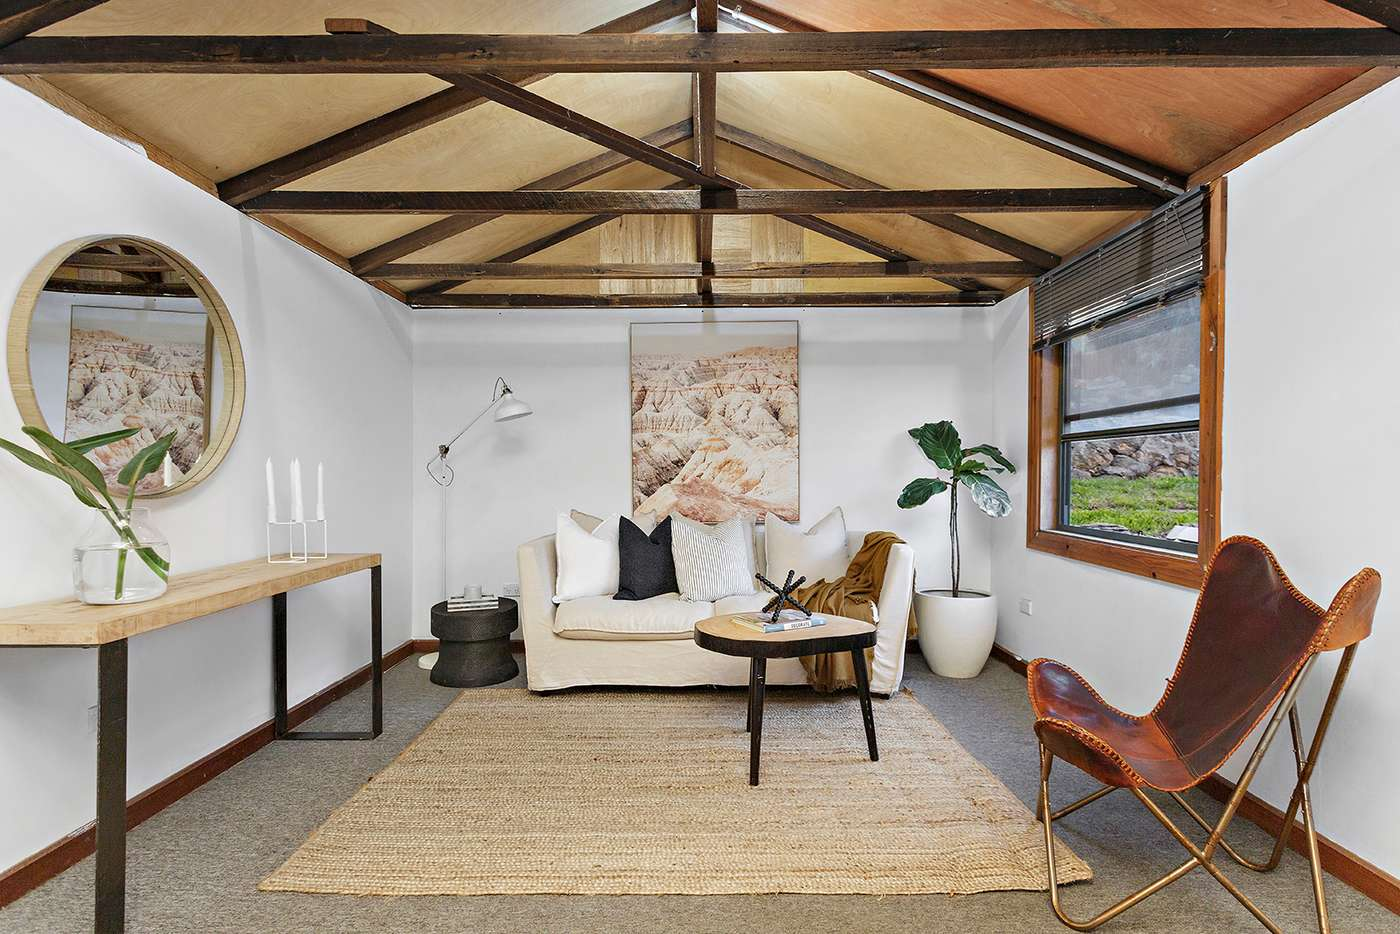 Main view of Homely house listing, 10 Prospect Street, Mount Saint Thomas NSW 2500